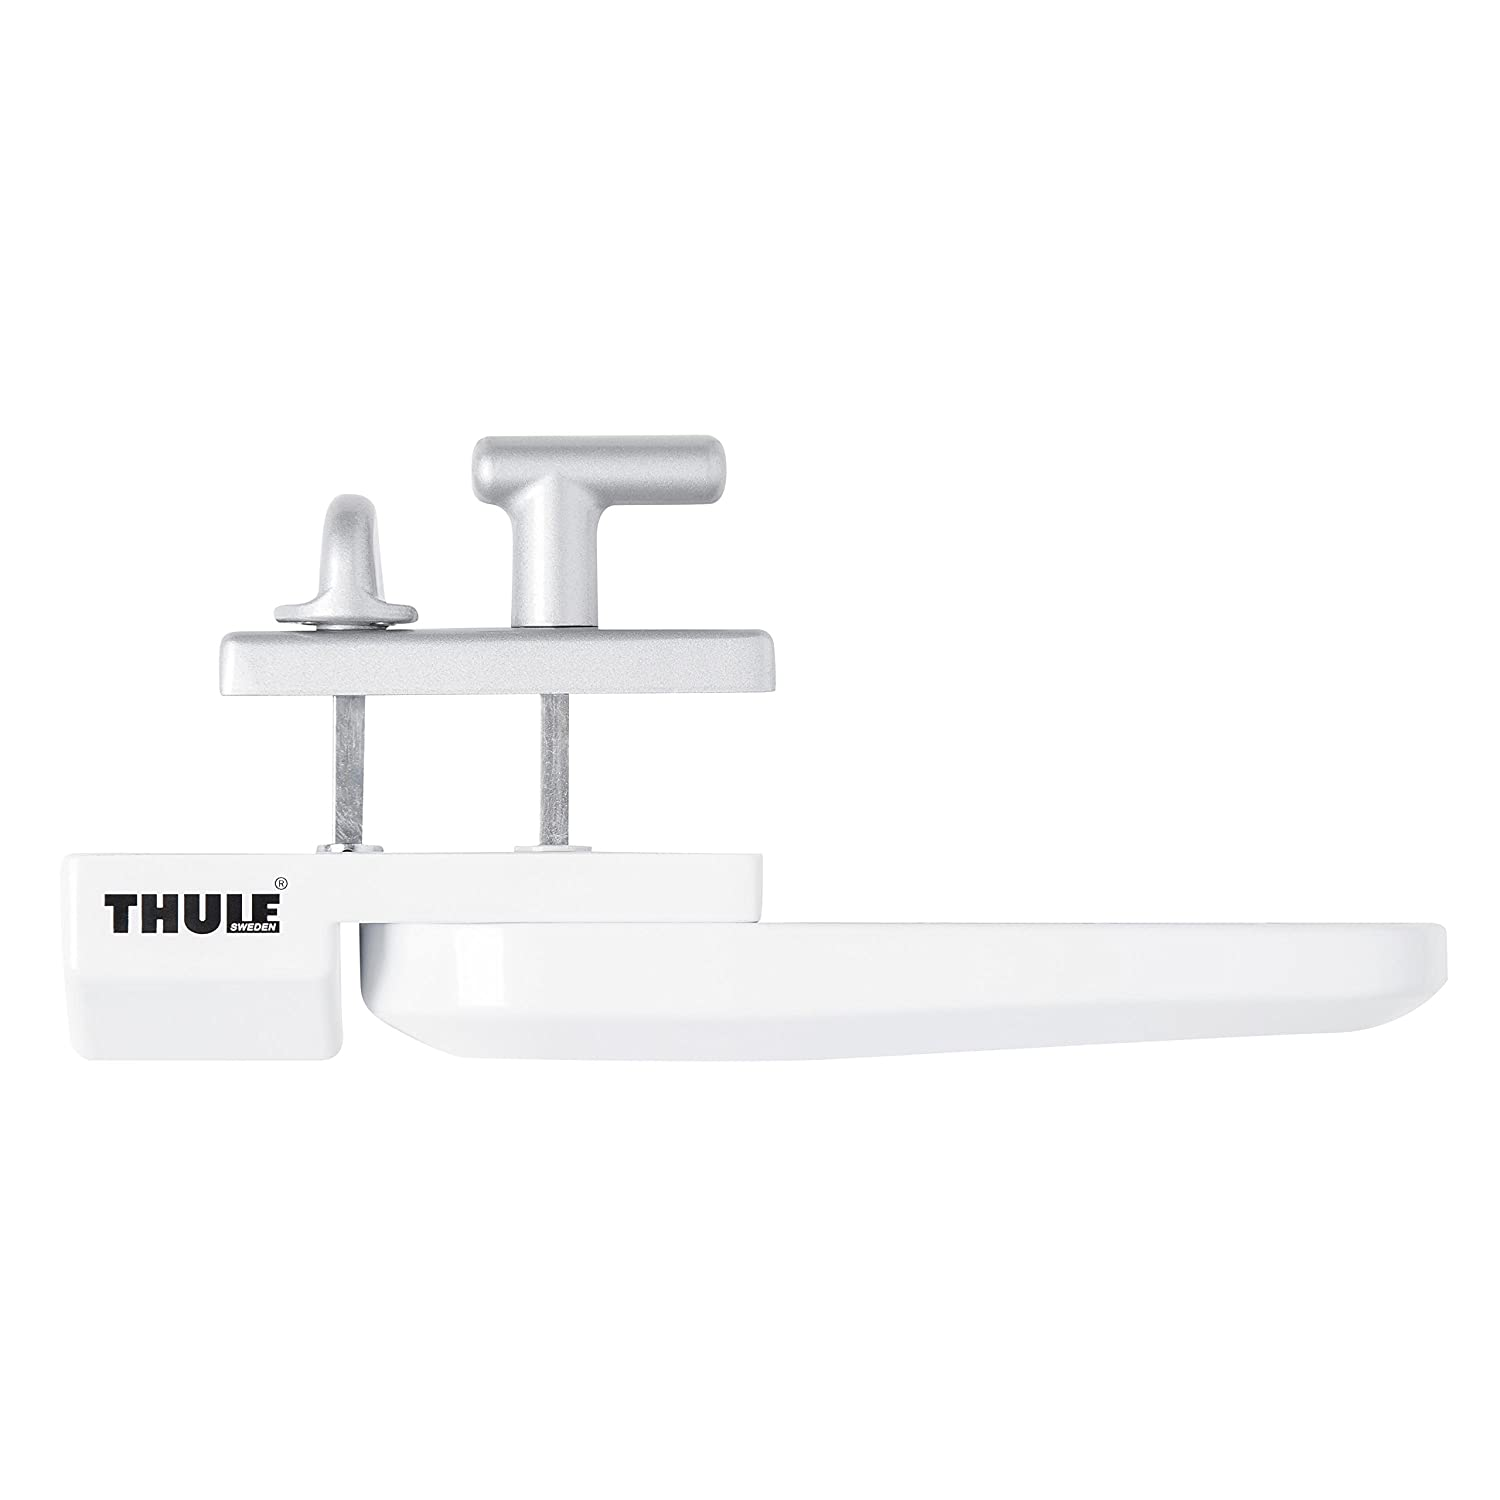 THULE Serrure de porte Inside-Out Lock G2 5415182041508